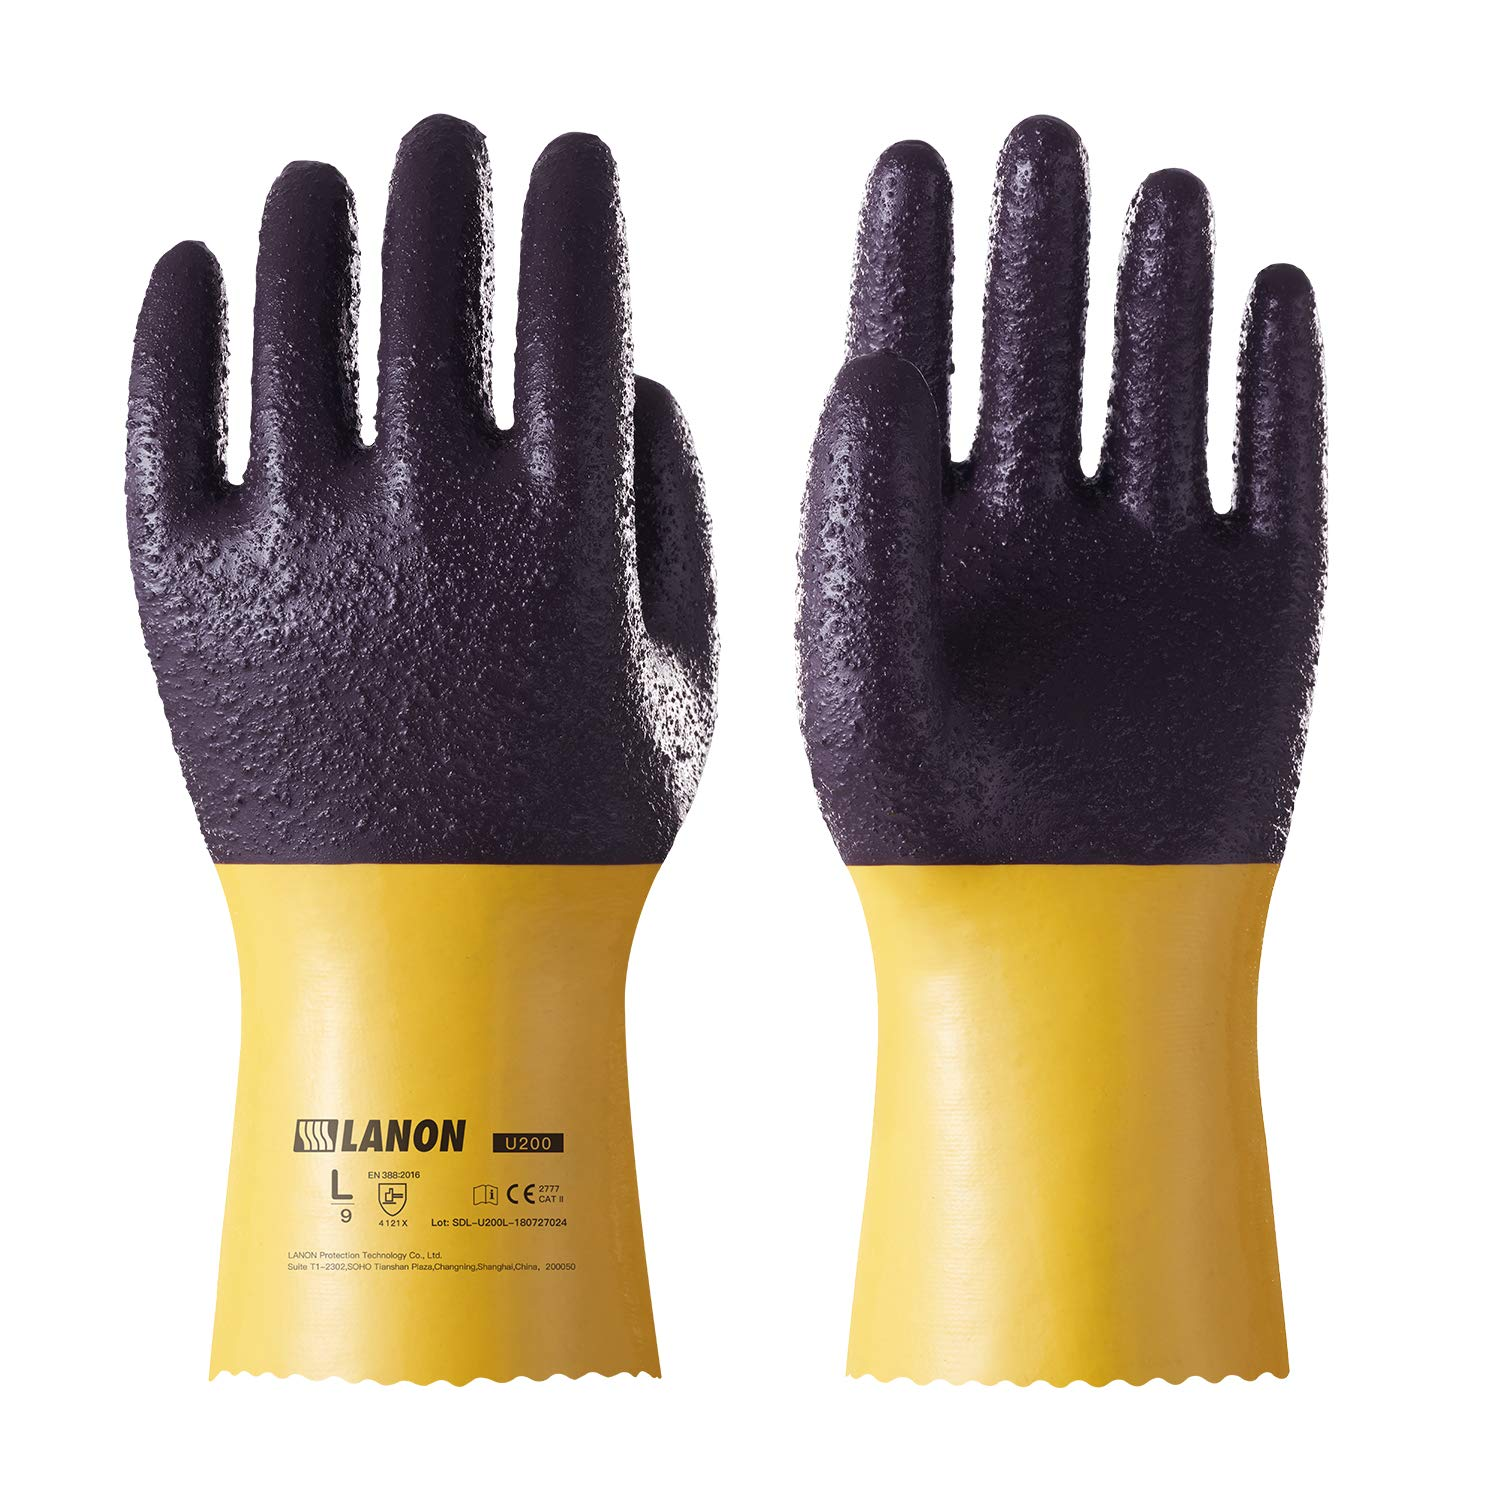 LANON Protection U200 Heavy Duty PVC Safety Gloves, Ultra Grip Mechanical Resistant Reusable Work Gloves, Anti Abrasion, Oil Resistant, Size XL, CE Listed, CAT II